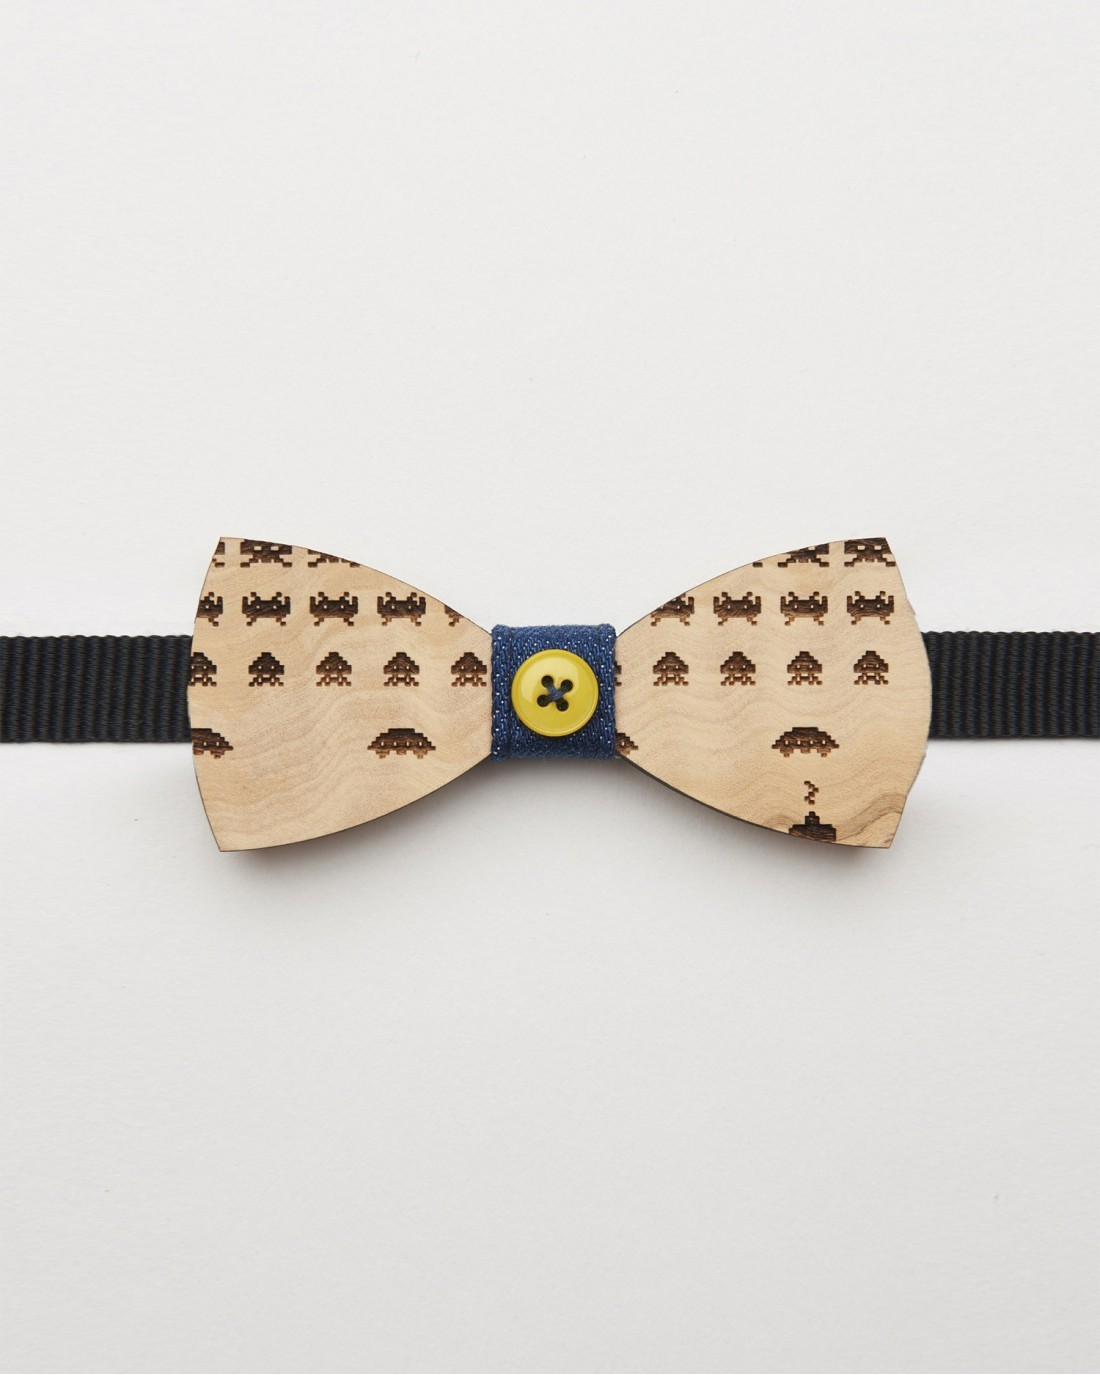 Bow Tie Space Invaders